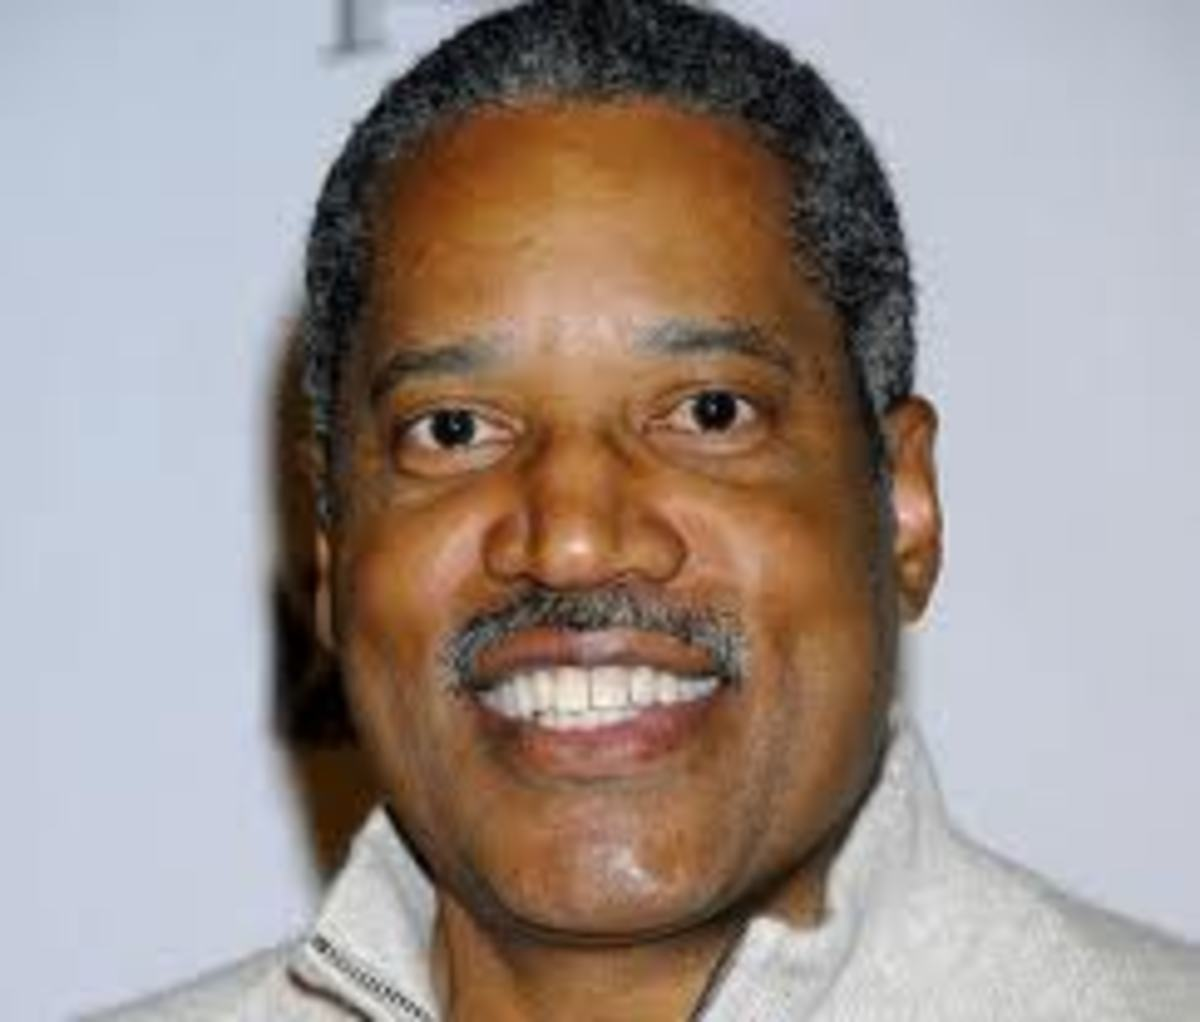 Many Blacks such as author/talk show host Larry Elder, J.D., believe despite racism, Blacks can achieve anything that they set their minds to-if they desire to do so.He equates victimology with the blame game and wanting to be rescued by others.